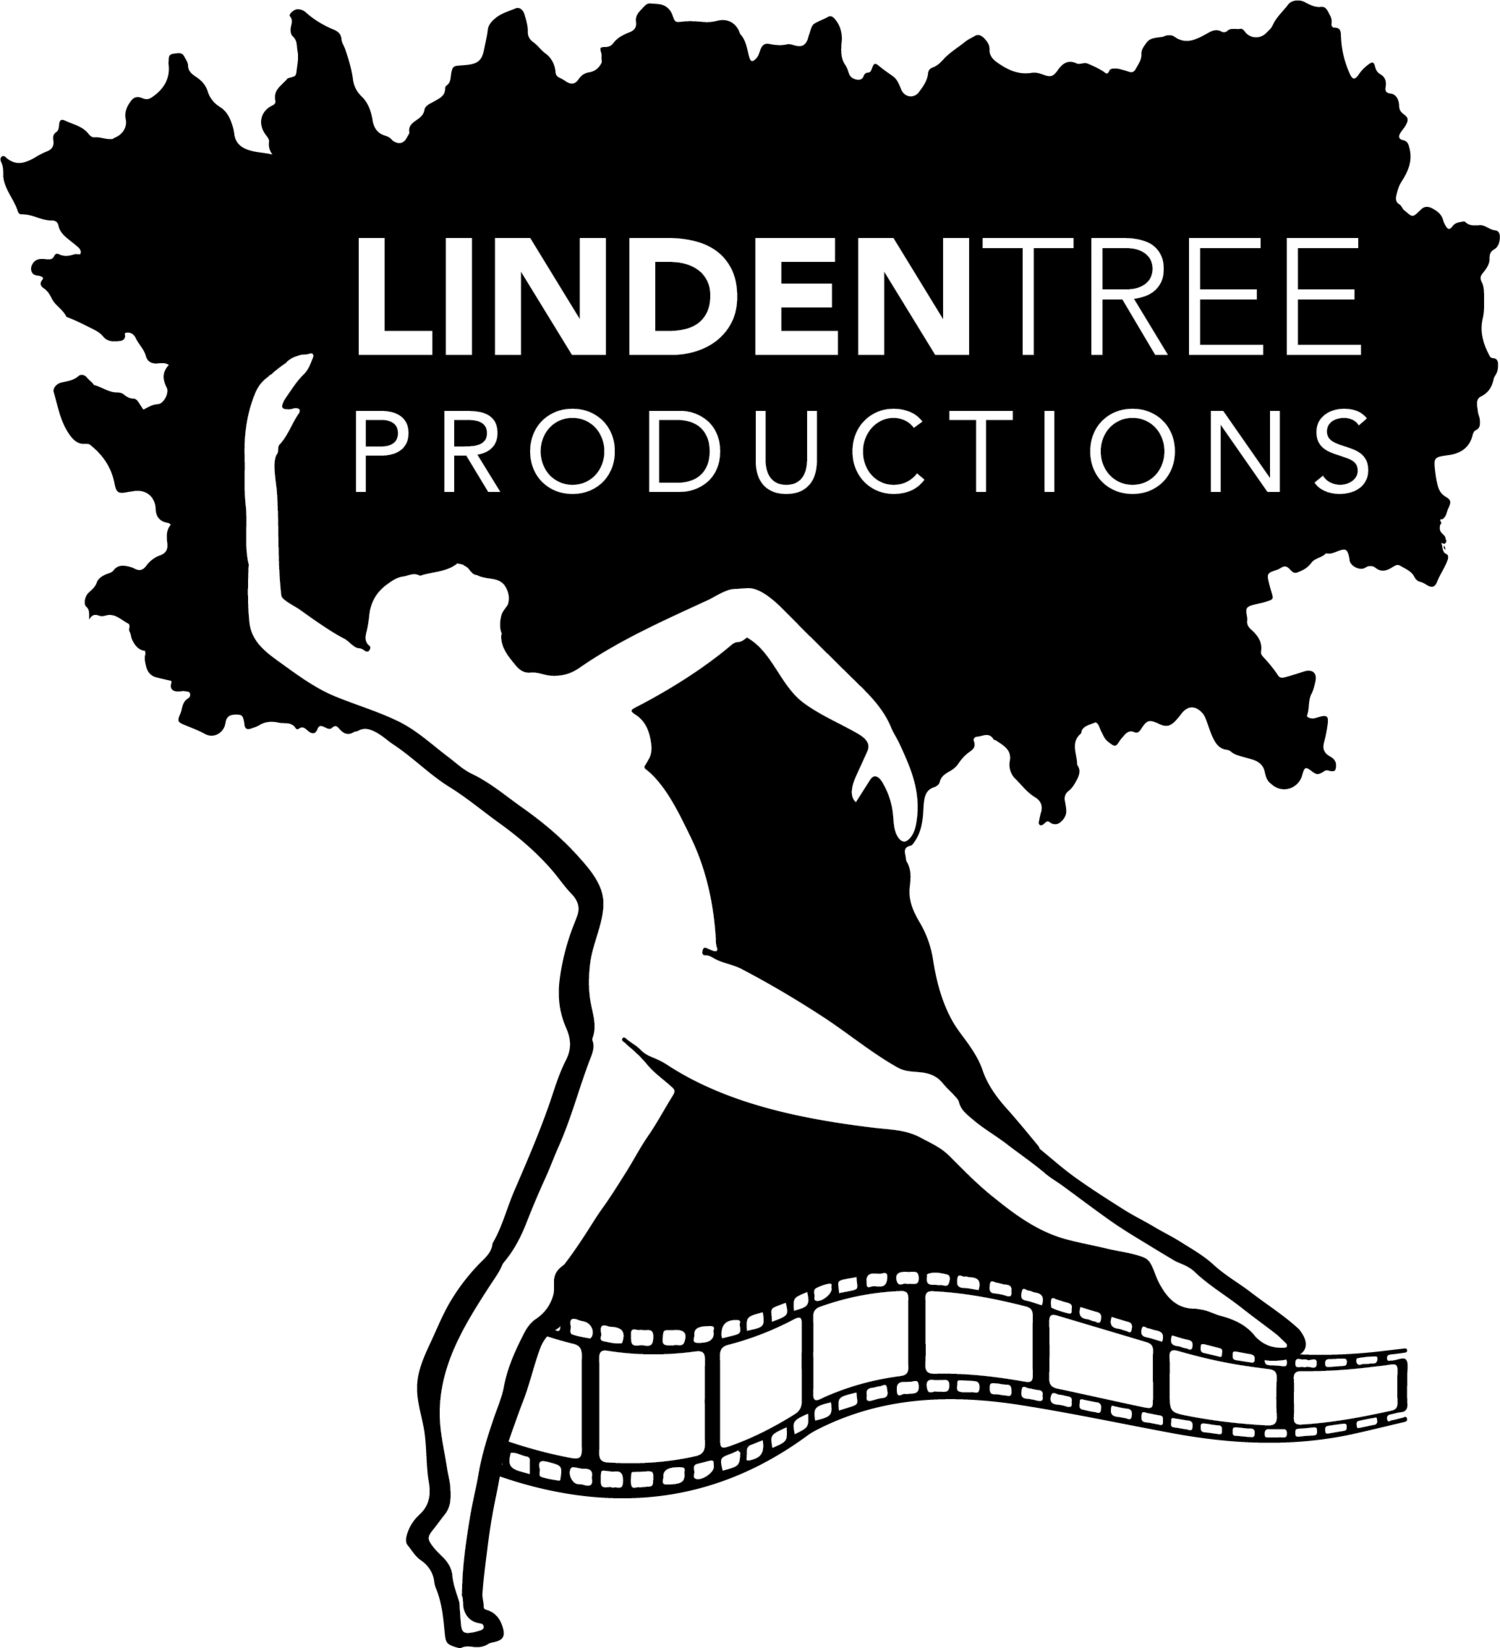 Linden Tree Productions